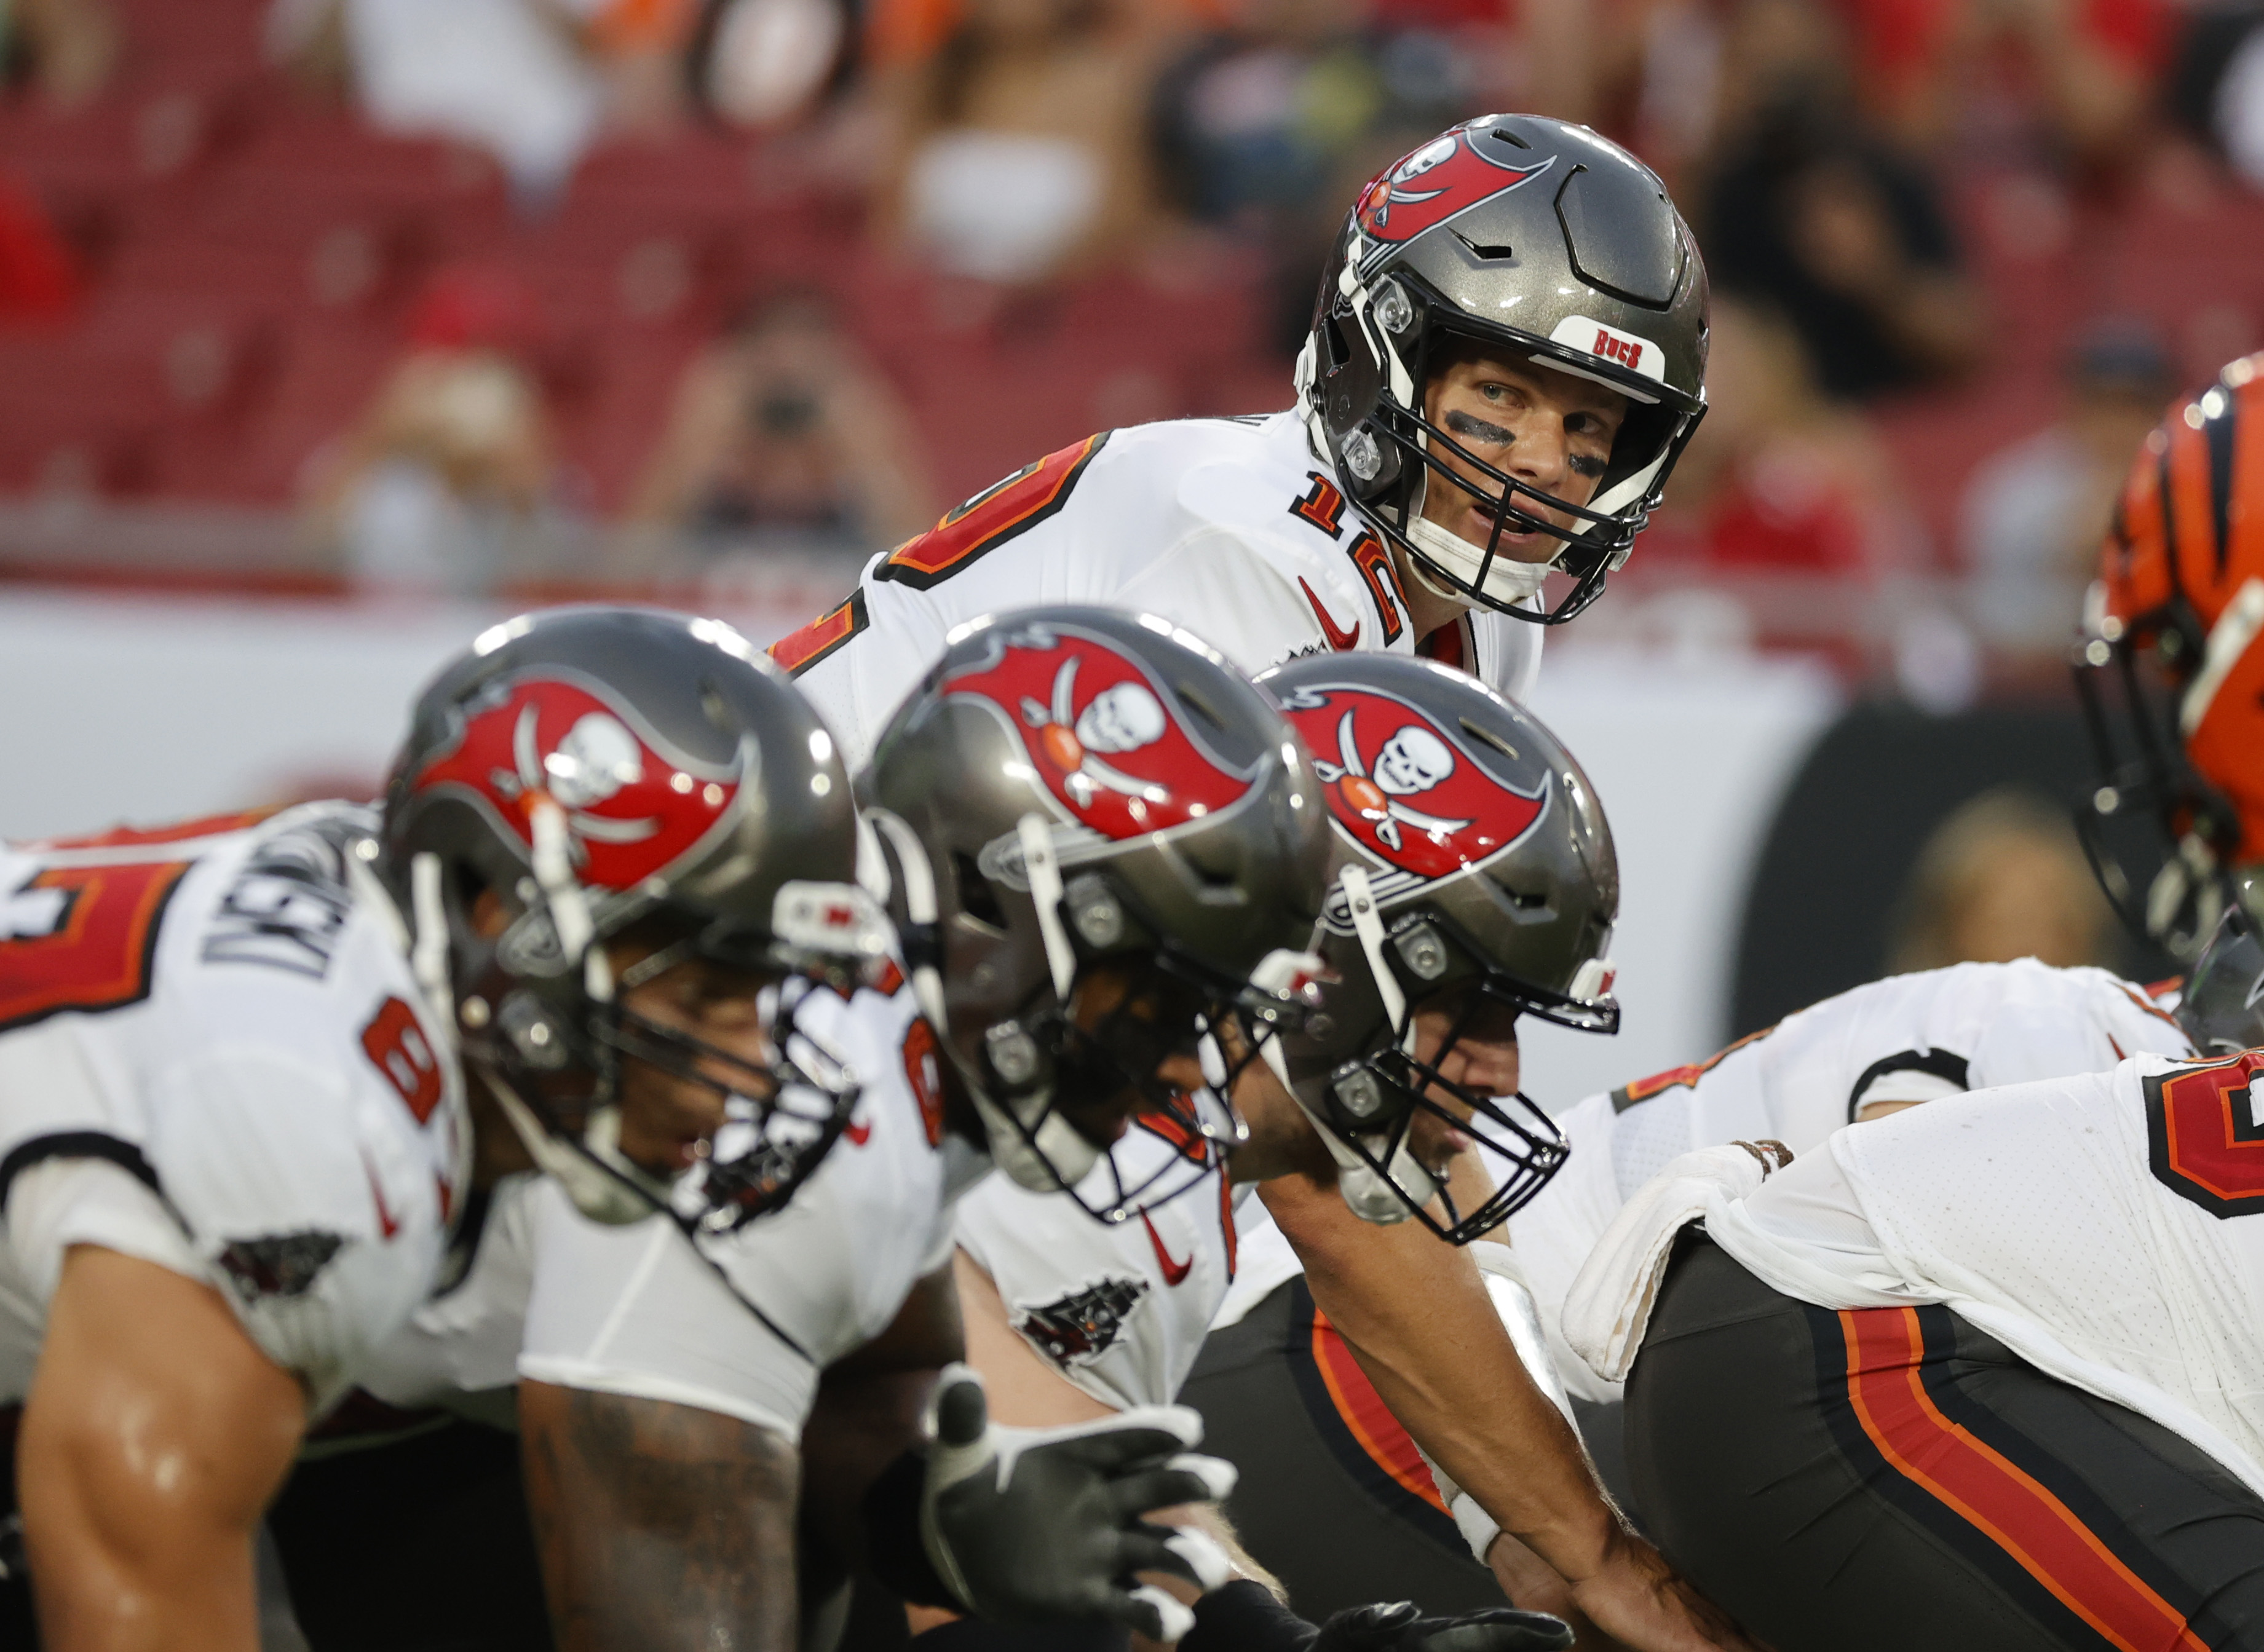 Tampa Bay Buccaneers quarterback Tom Brady waits for the snap against the Cincinnati Bengals during the first quarter at Raymond James Stadium.